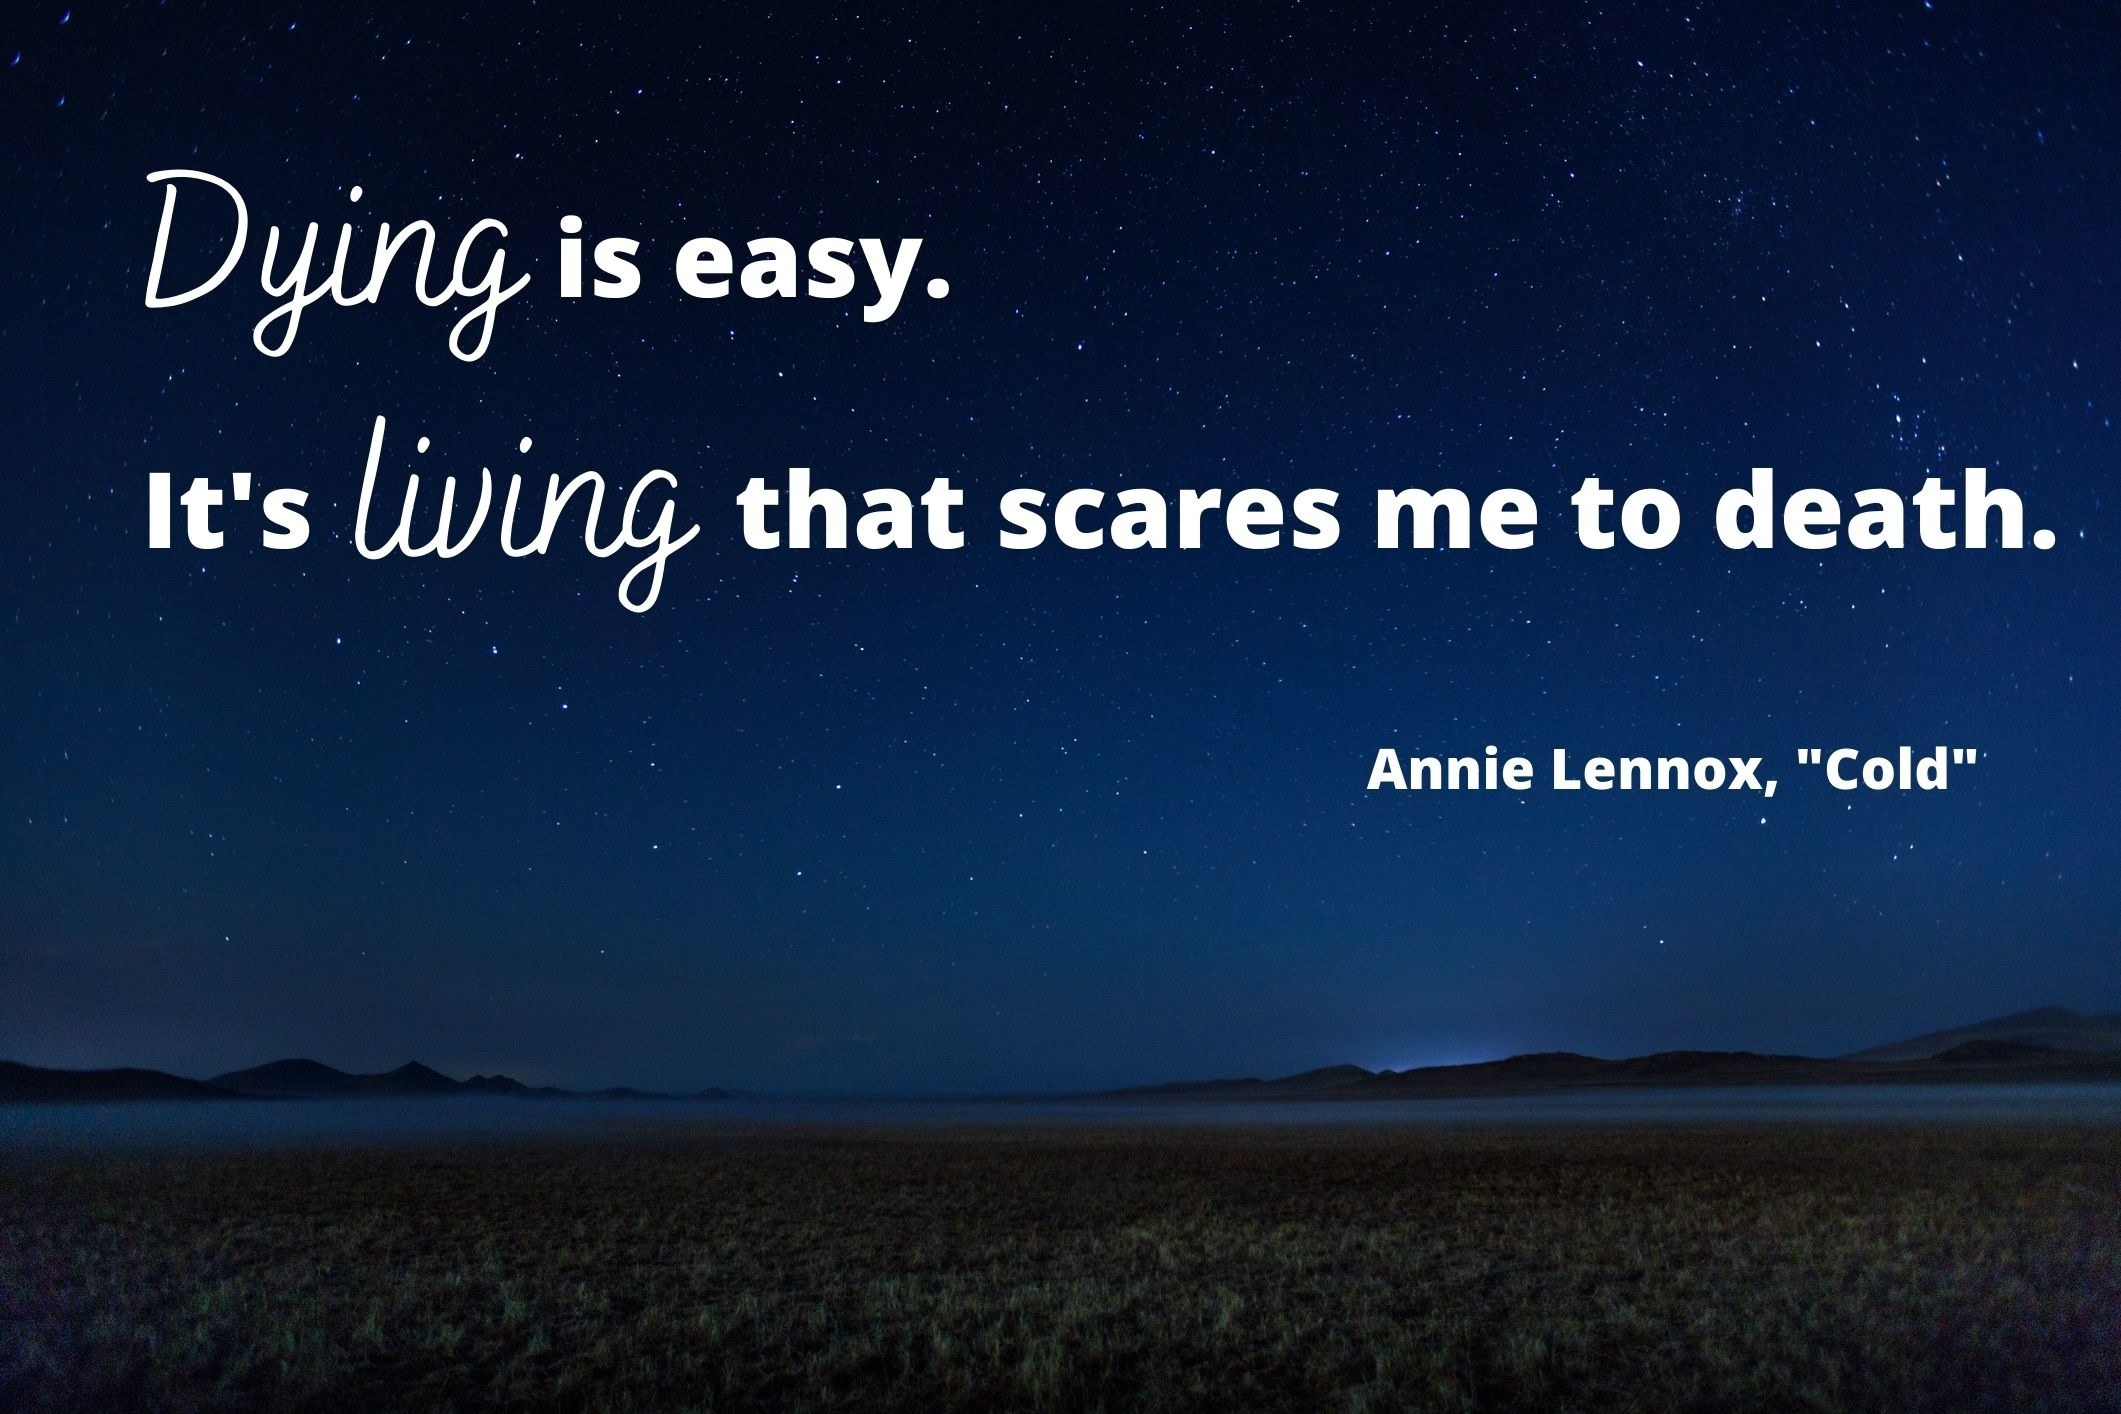 """""""Dying is easy. It's living that scares me to death"""" by Annie Lennox over the night sky"""